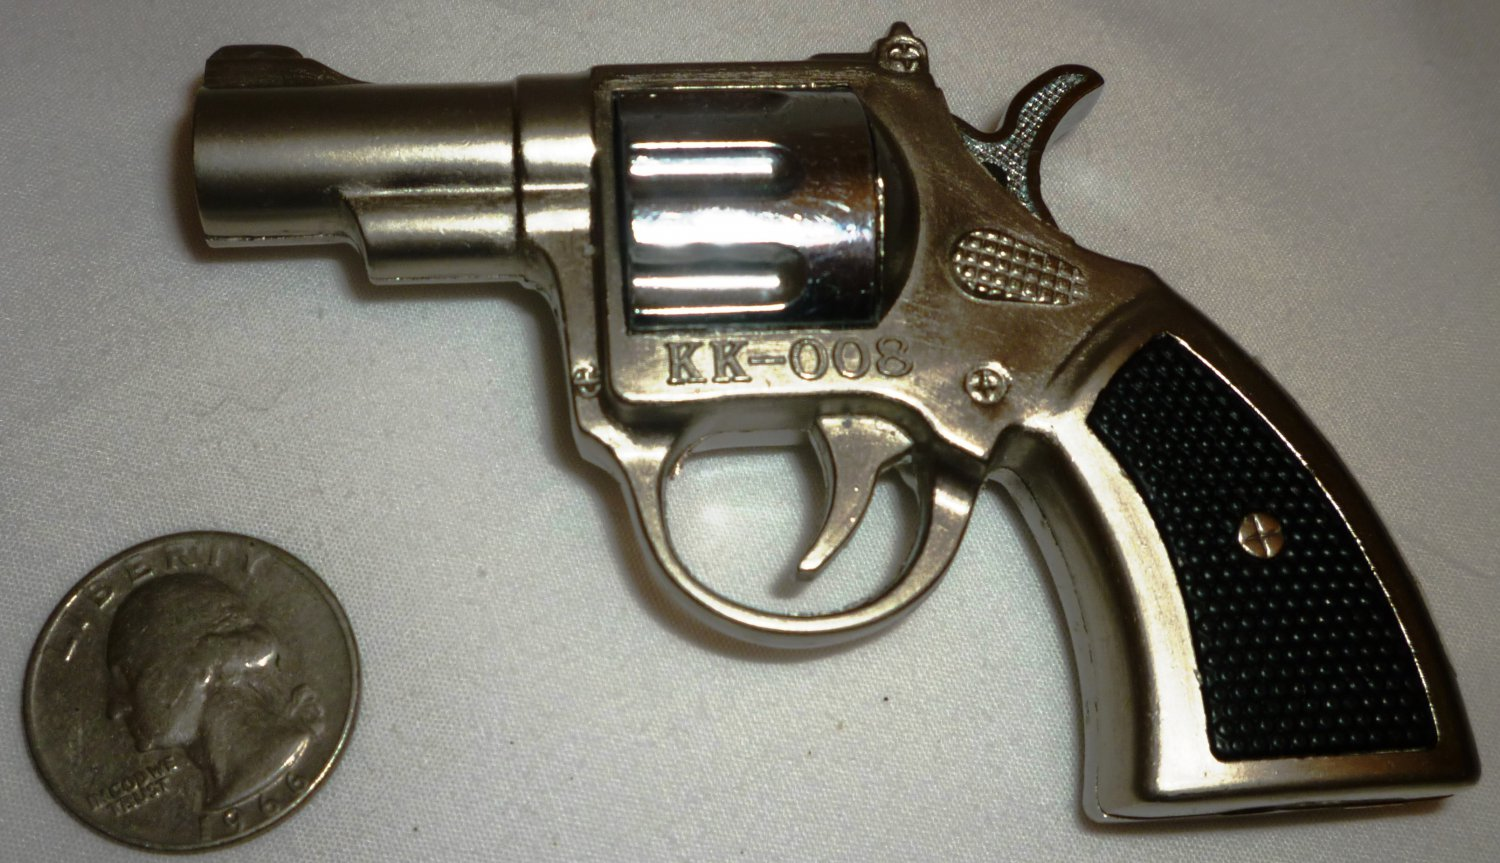 MINIATURE FIGURAL CIGARETTE LIGHTER KK-008 REVOLVER PISTOL